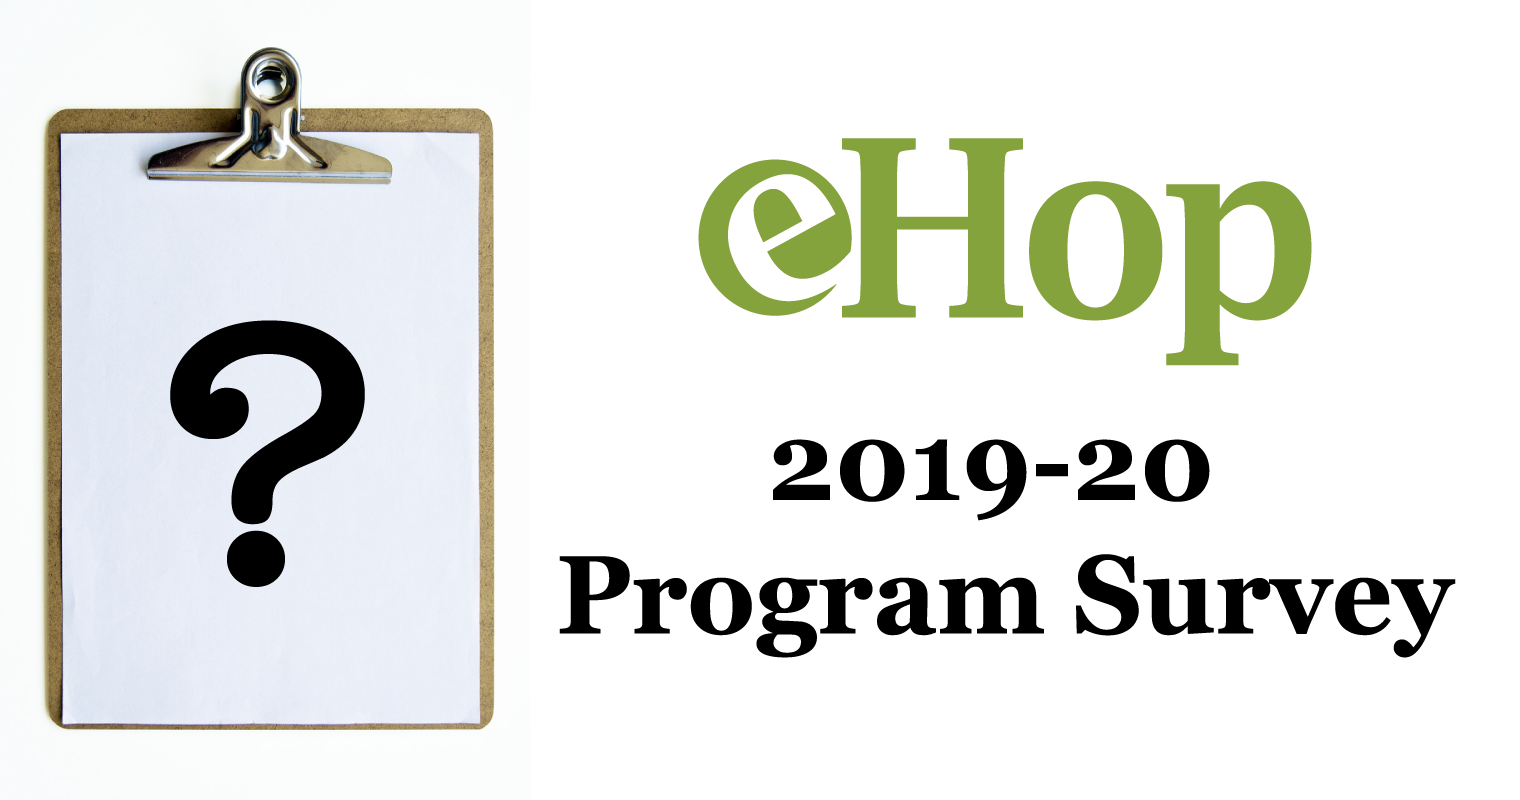 eHop Brief Program Survey 2019-20